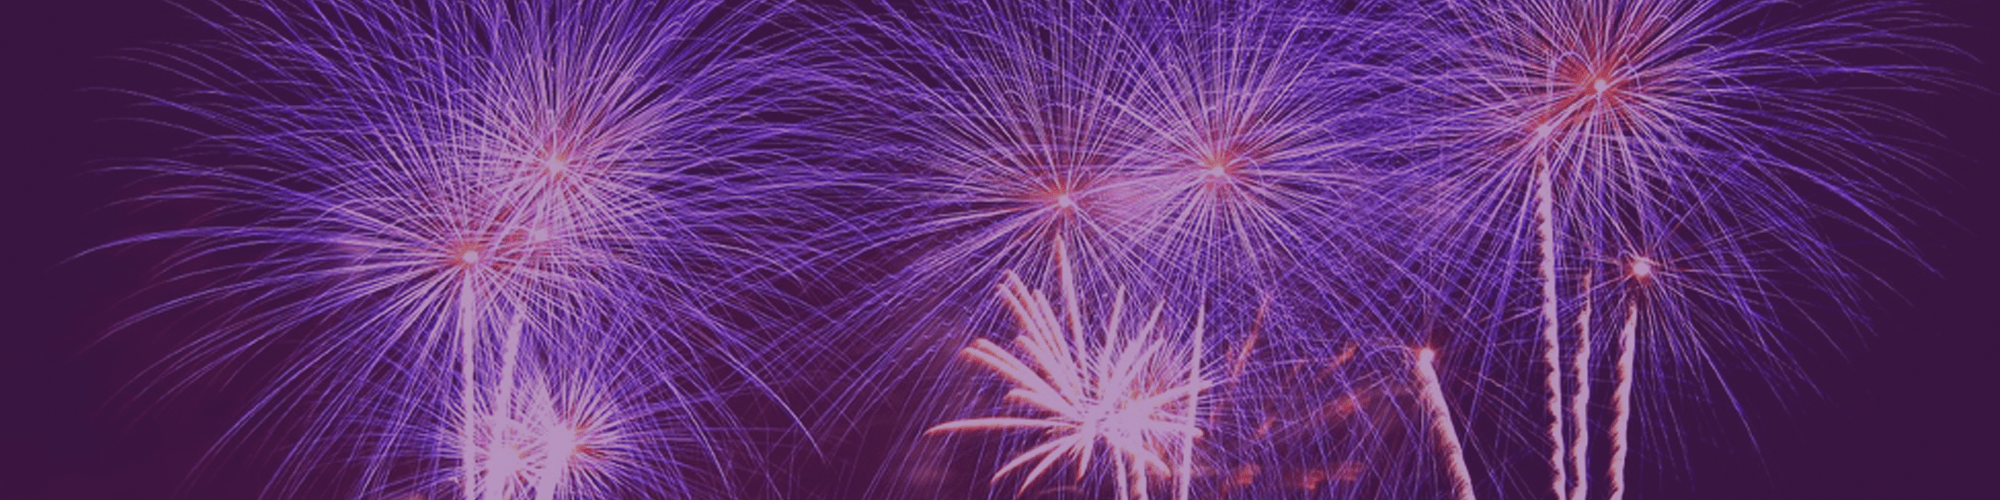 Fireworks on a purple background